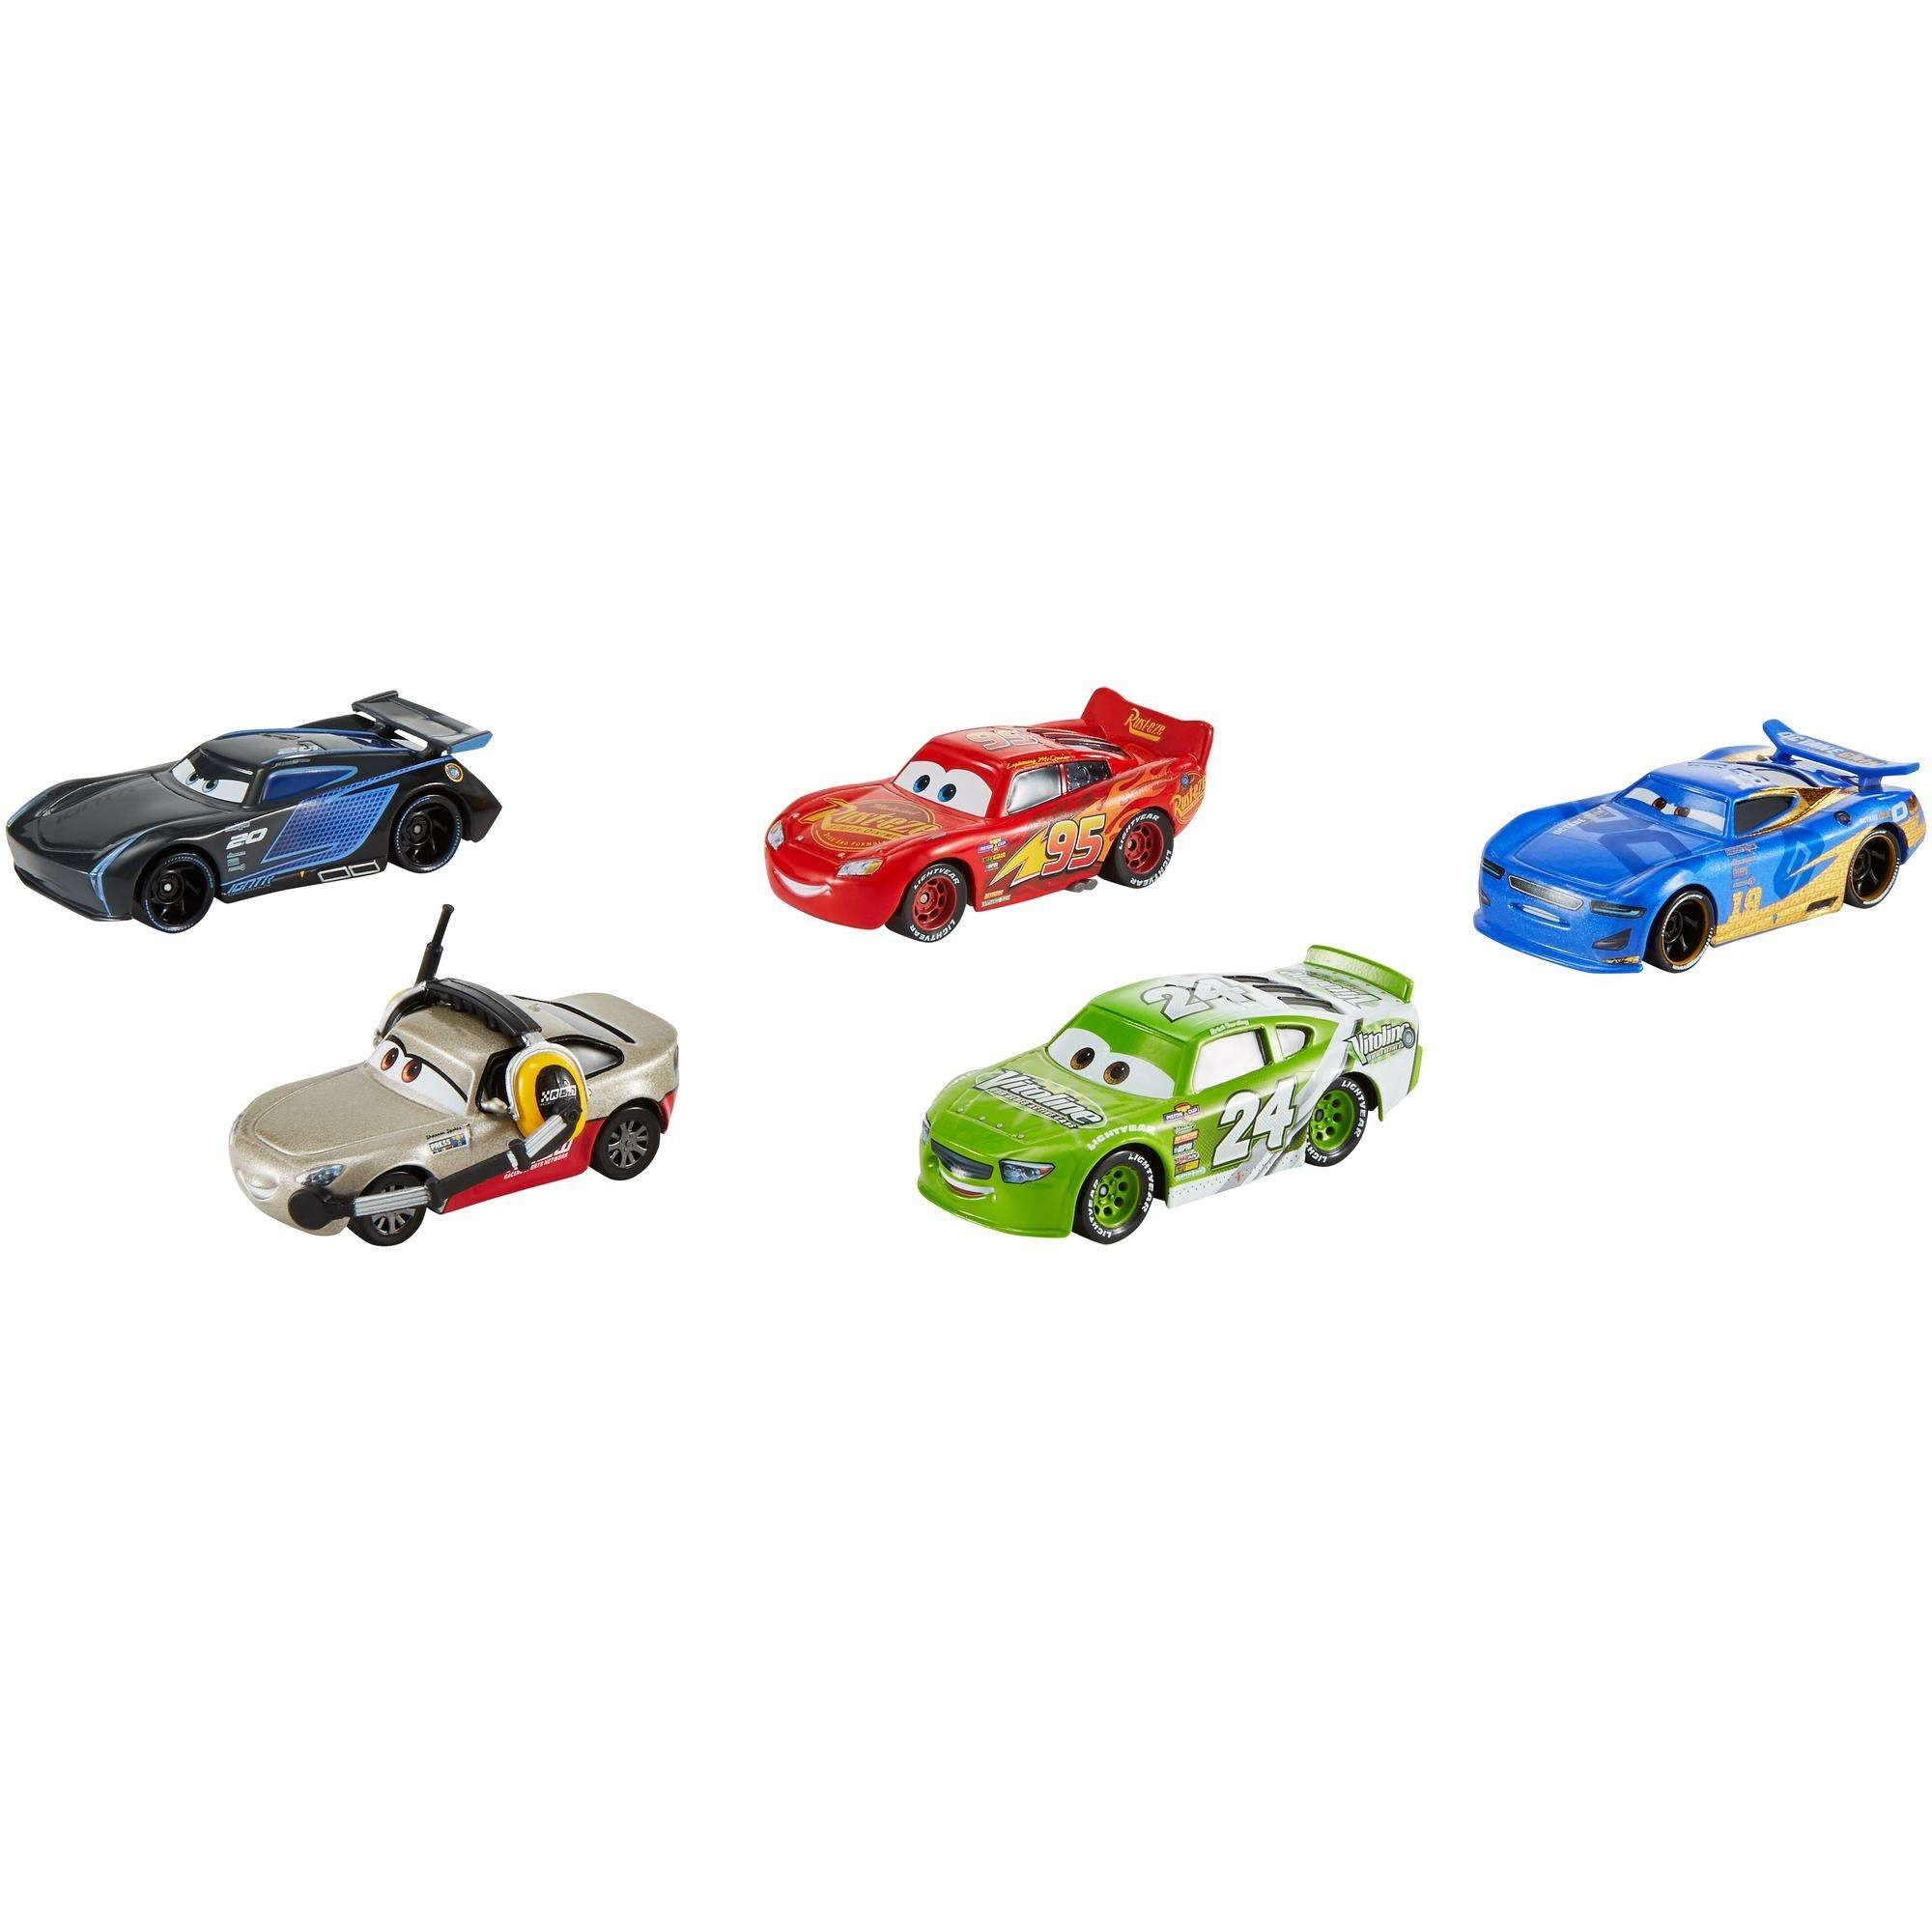 Disney Pixar Cars 3 Piston Cup Race 5 Pack Die Cast Vehicles